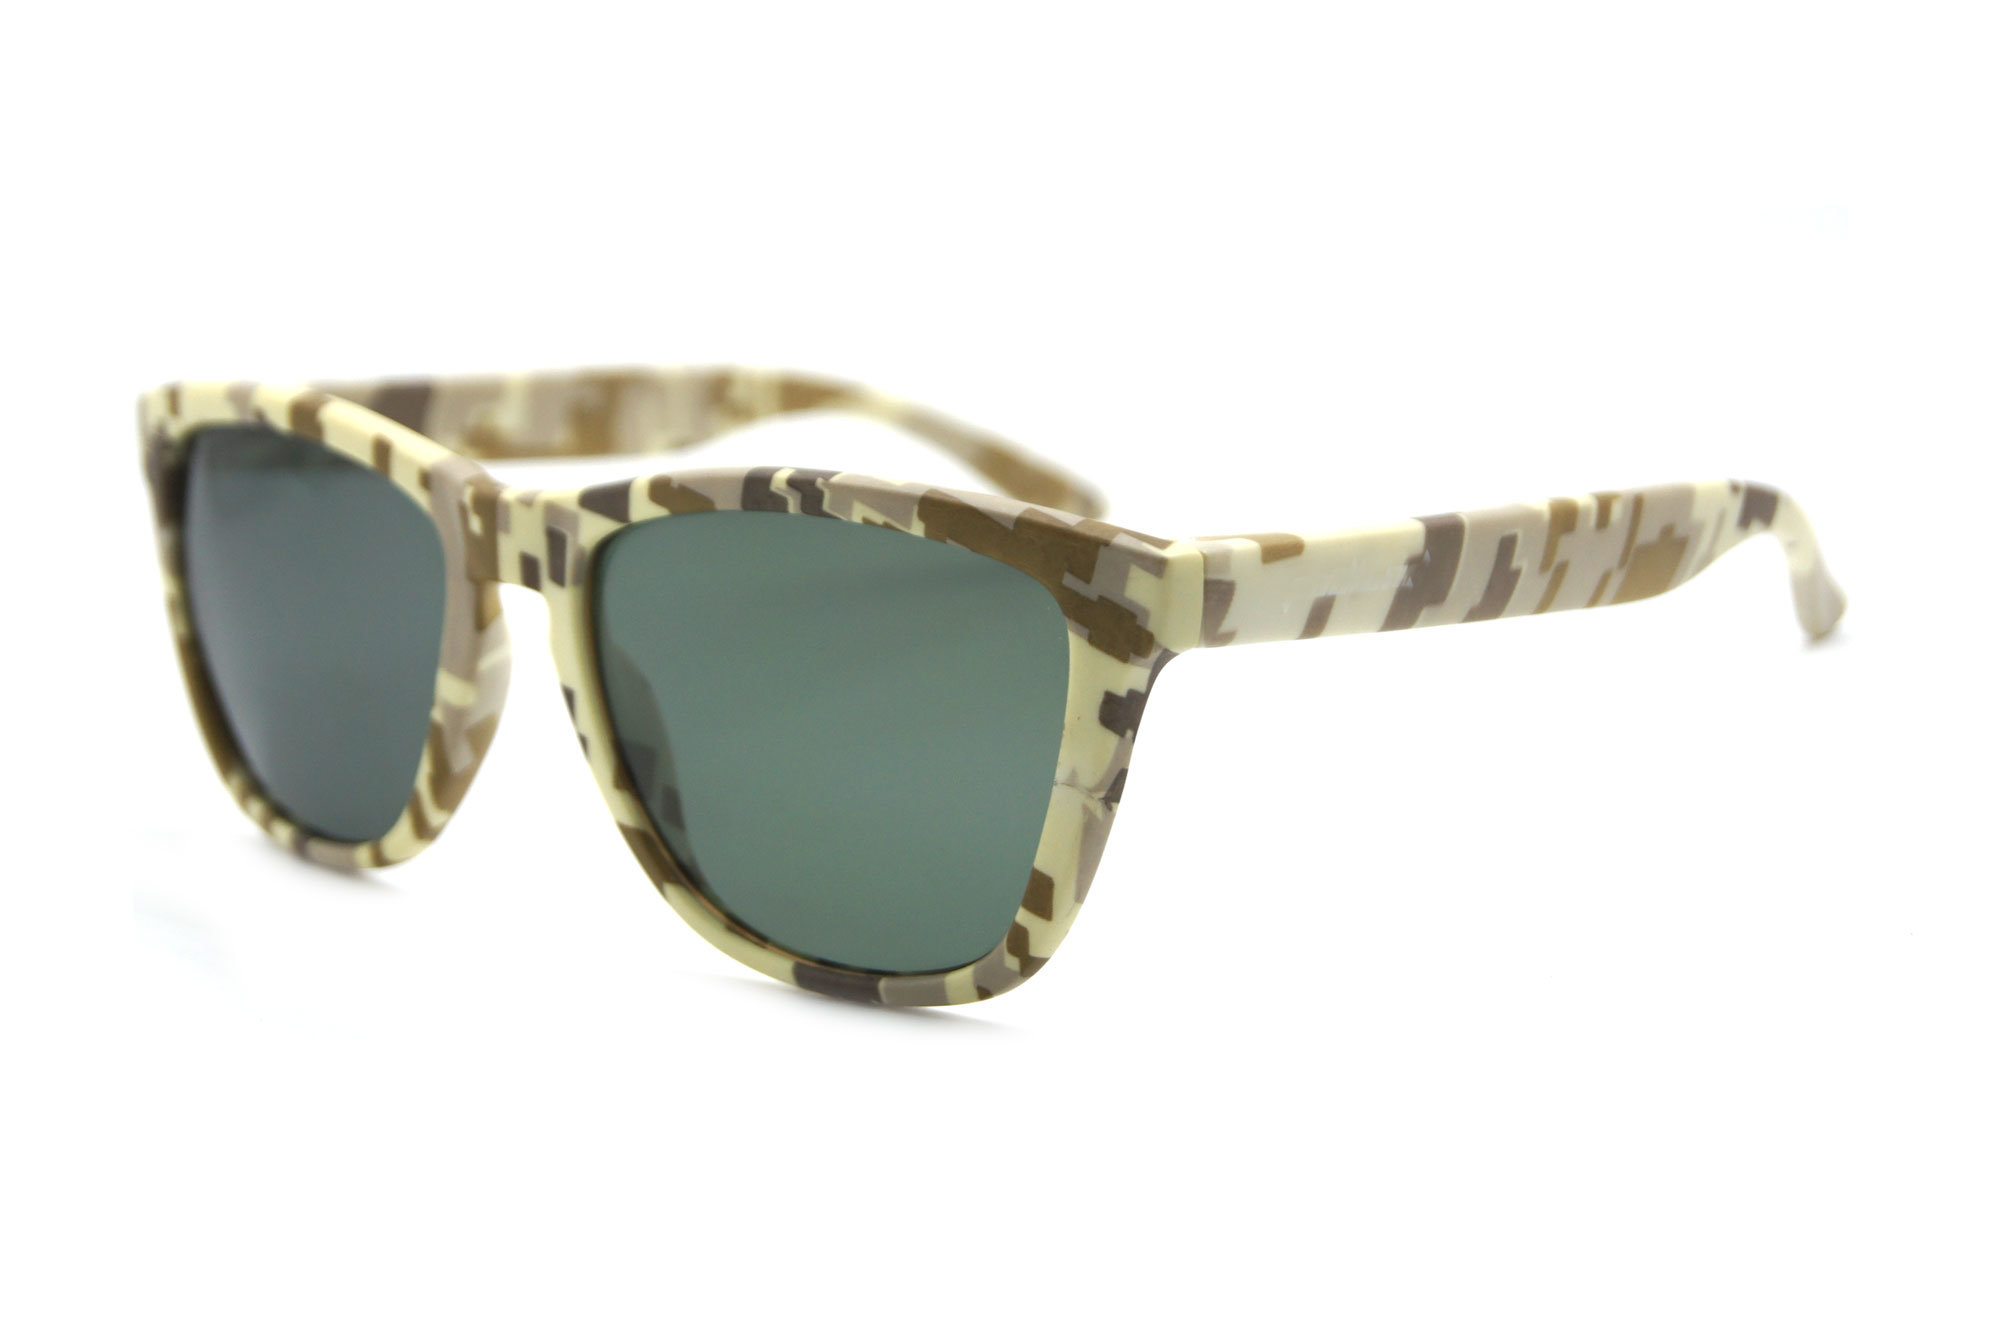 New Design Good Quality Camouflage Frame Fashion Sunglasses